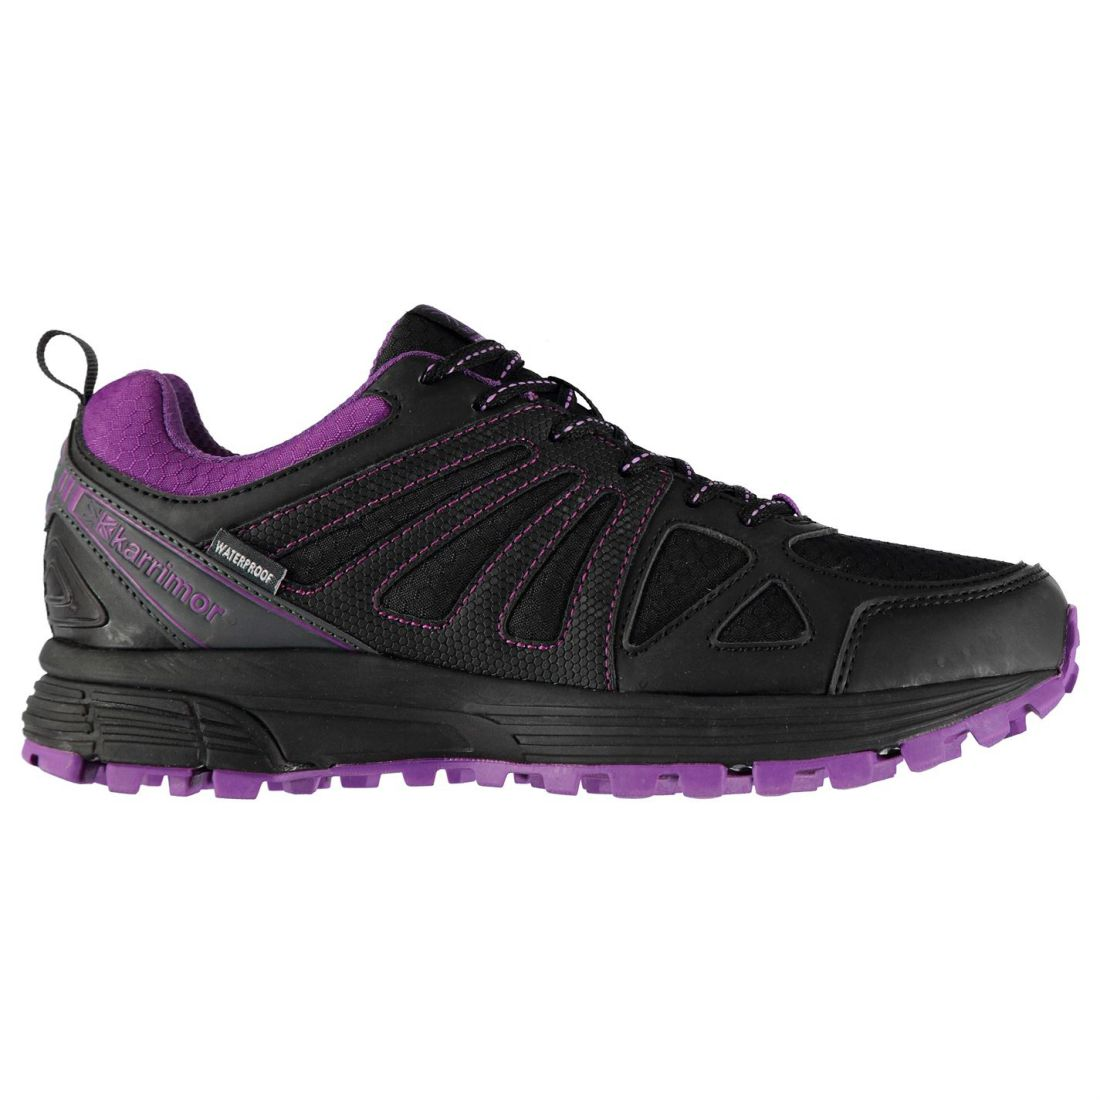 Wp Negro Runners Ladies púrpura Karrimor Automobileacal SZq6w56F